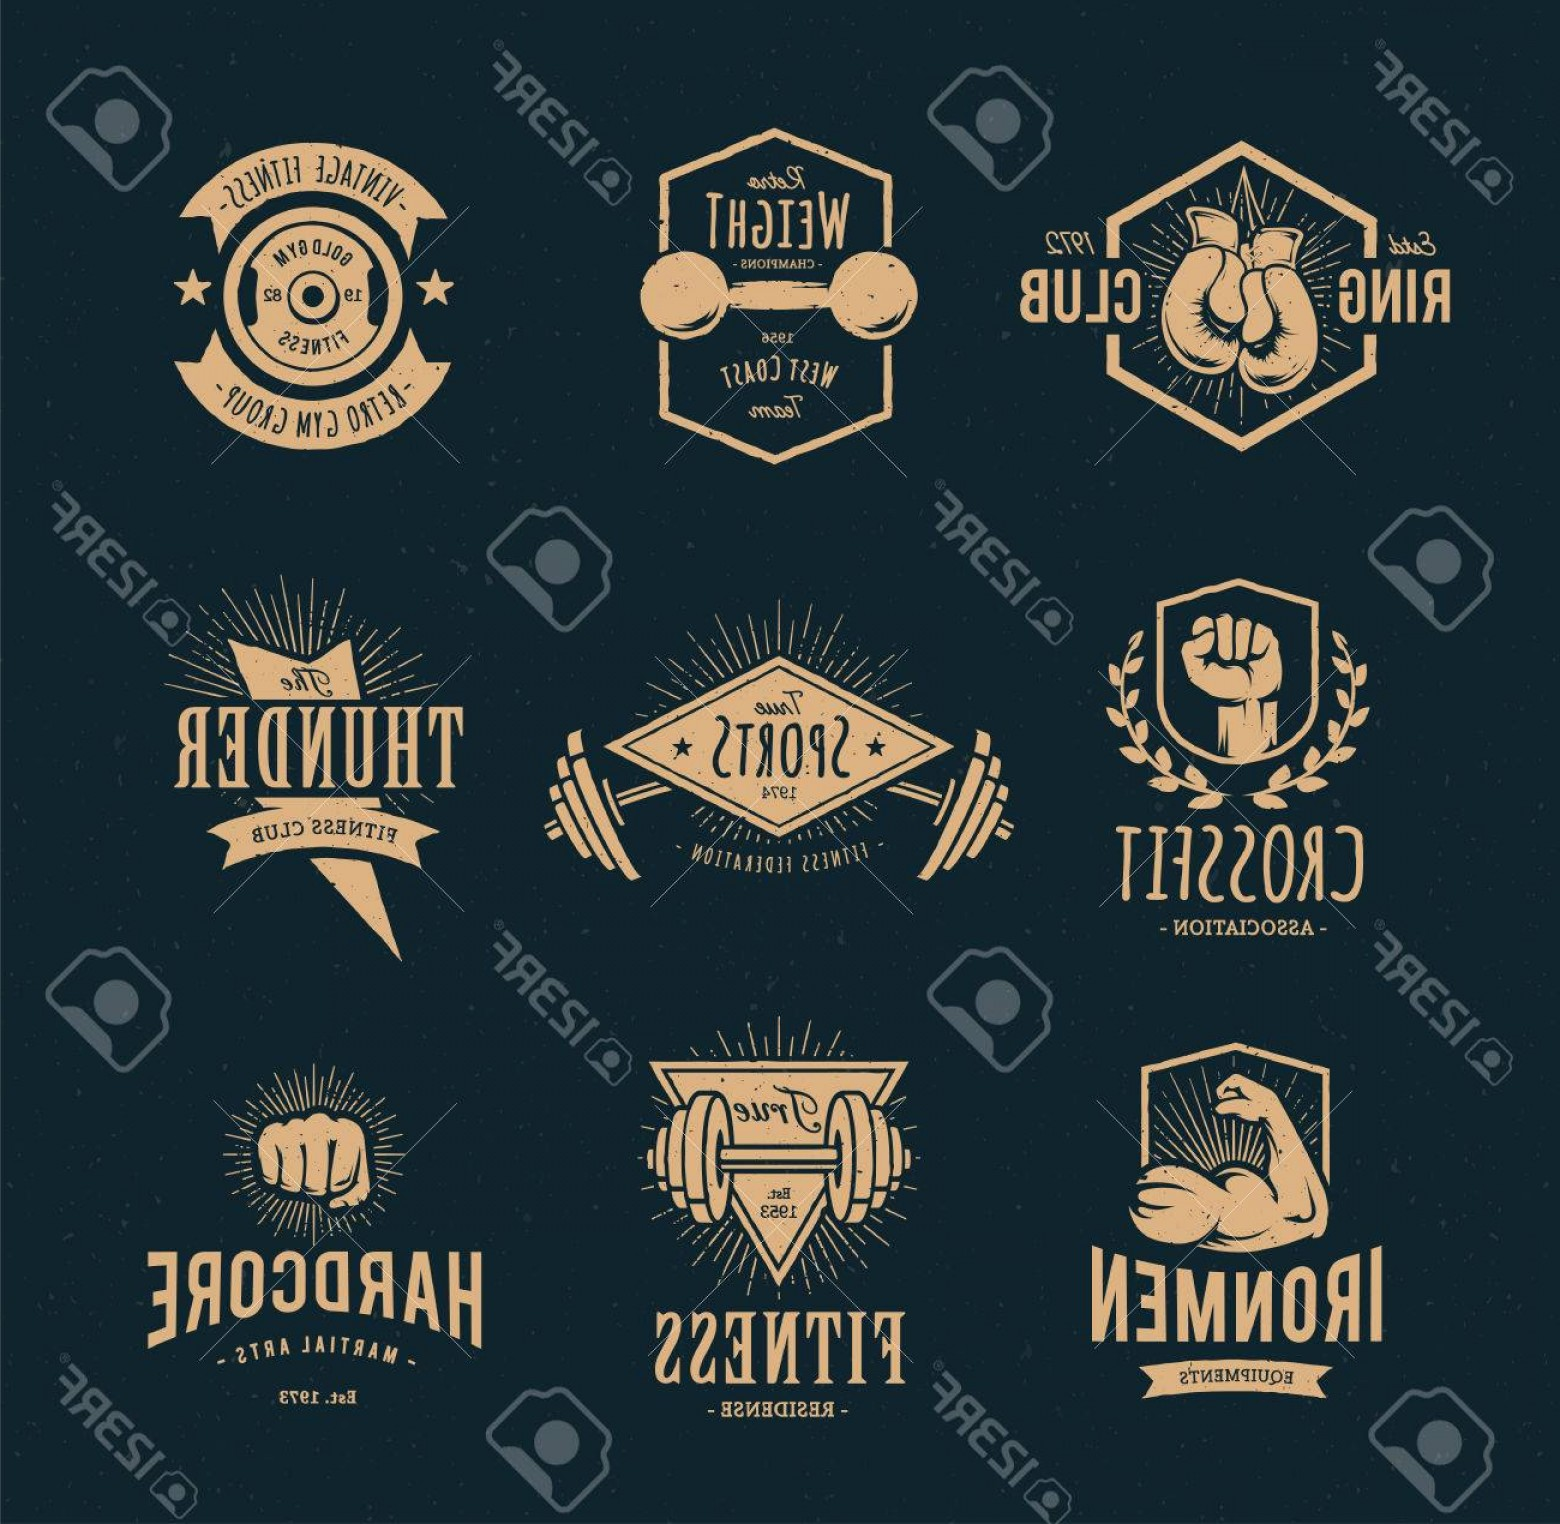 Champions Gym Vector: Photostock Vector Set Of Retro Styled Fitness Emblems Vintage Gym Icon Templates Vector Illustrations